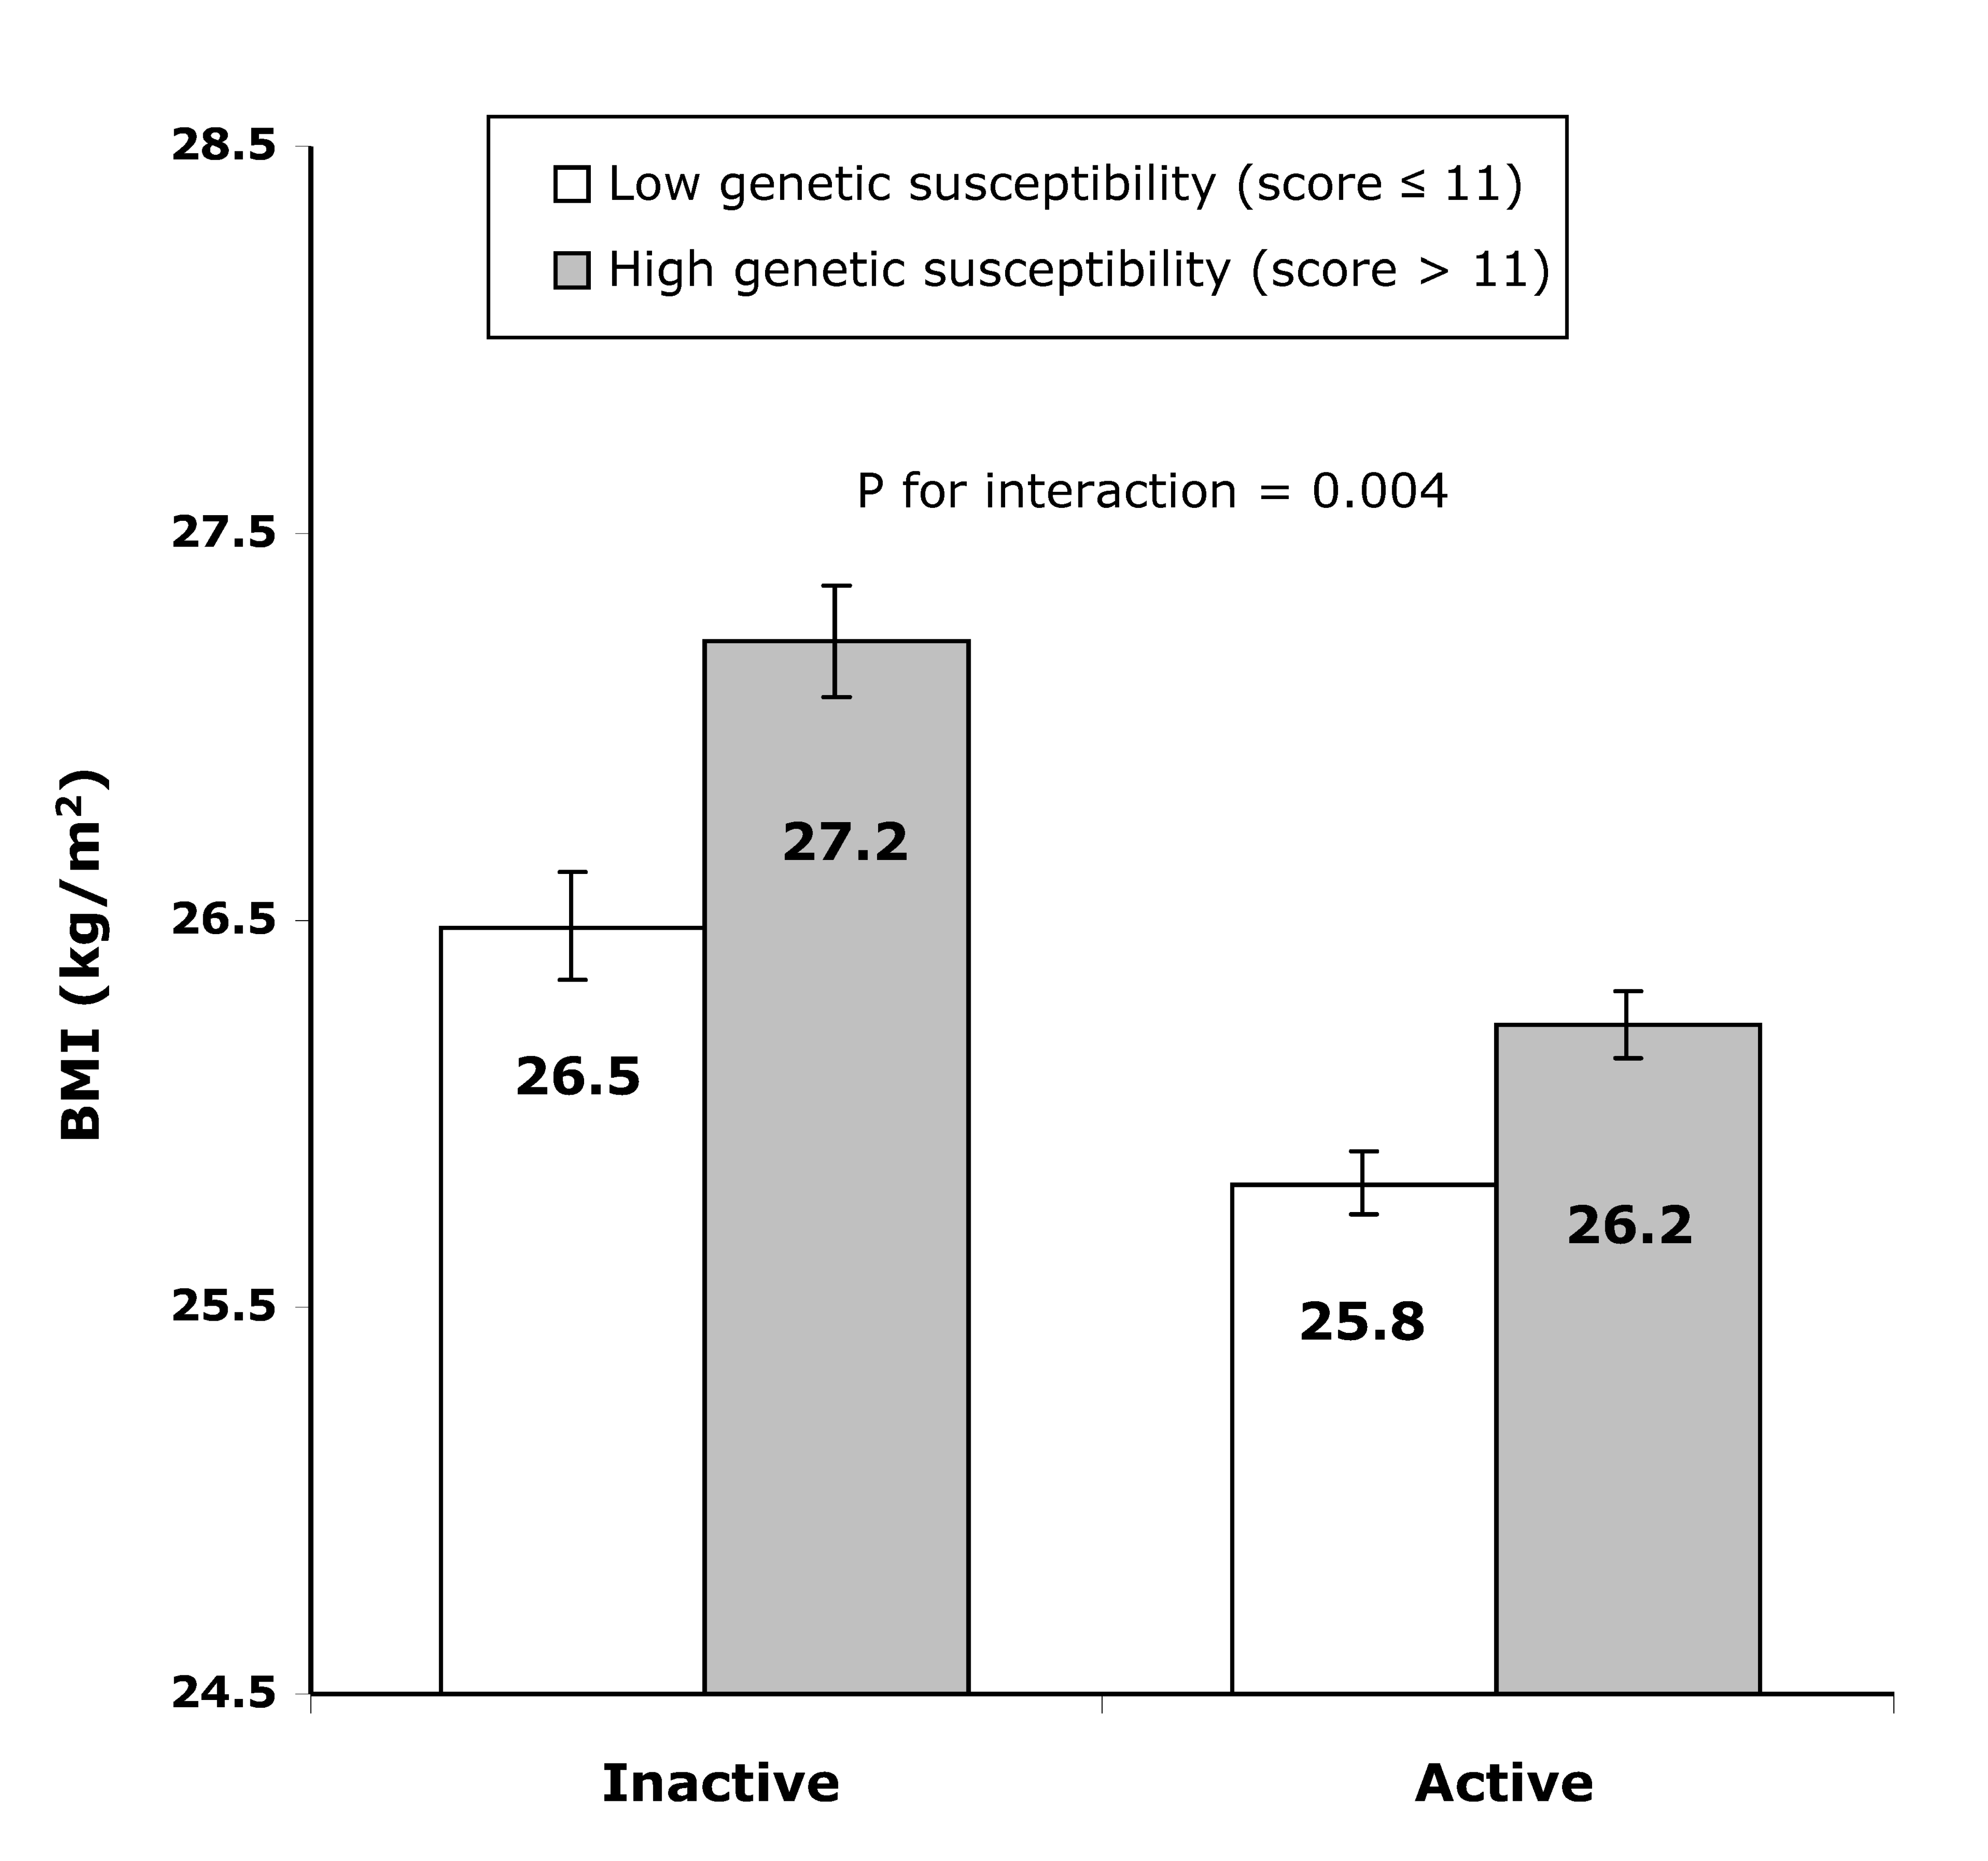 Difference in least square means of BMI between the high (>11 BMI-increasing alleles) and the low (≤11 BMI-increasing alleles) genetic susceptibility groups in the combined active group and the inactive group.